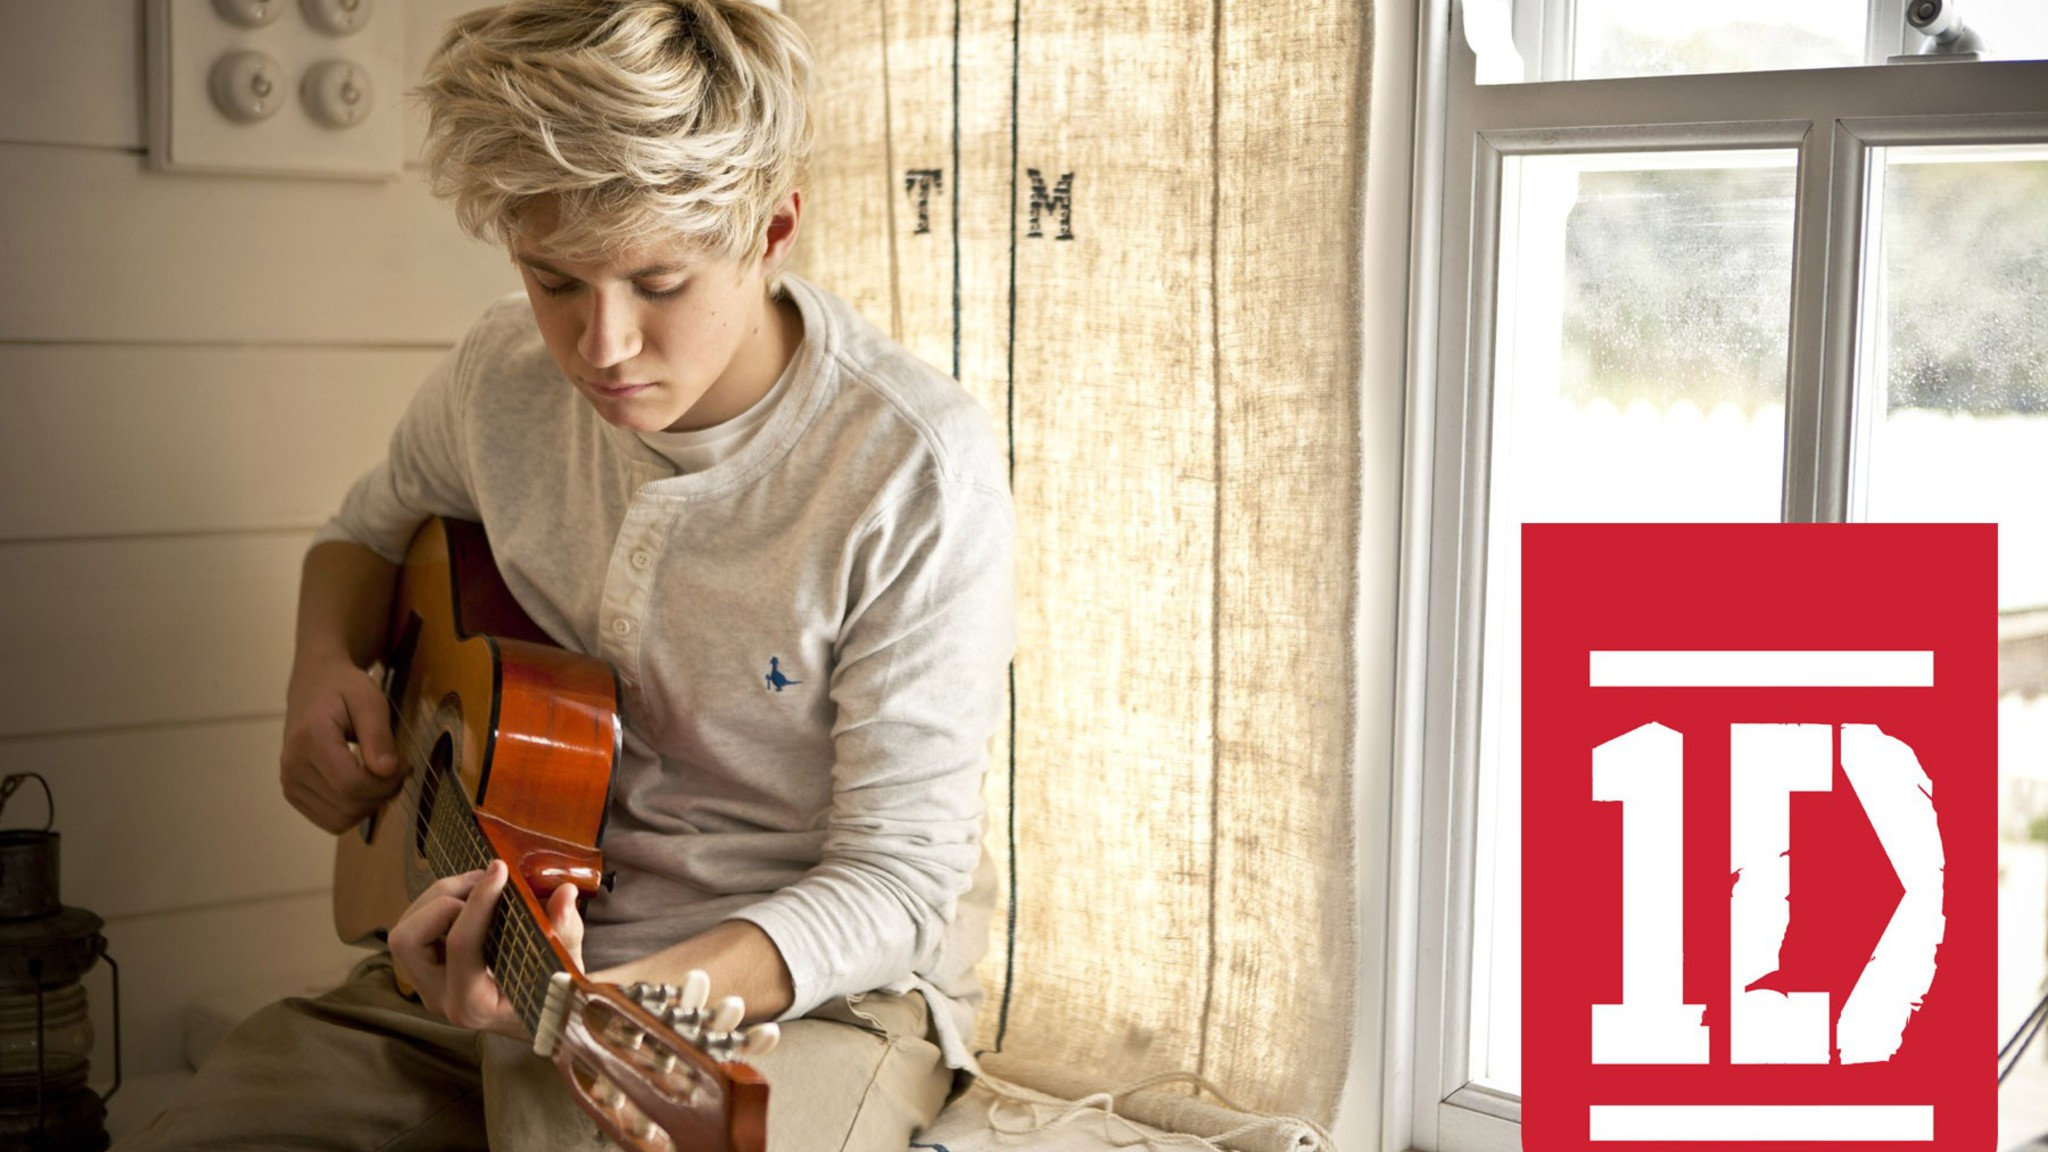 niall horan 2013 wallpaper allwallpaperin 7722 pc en